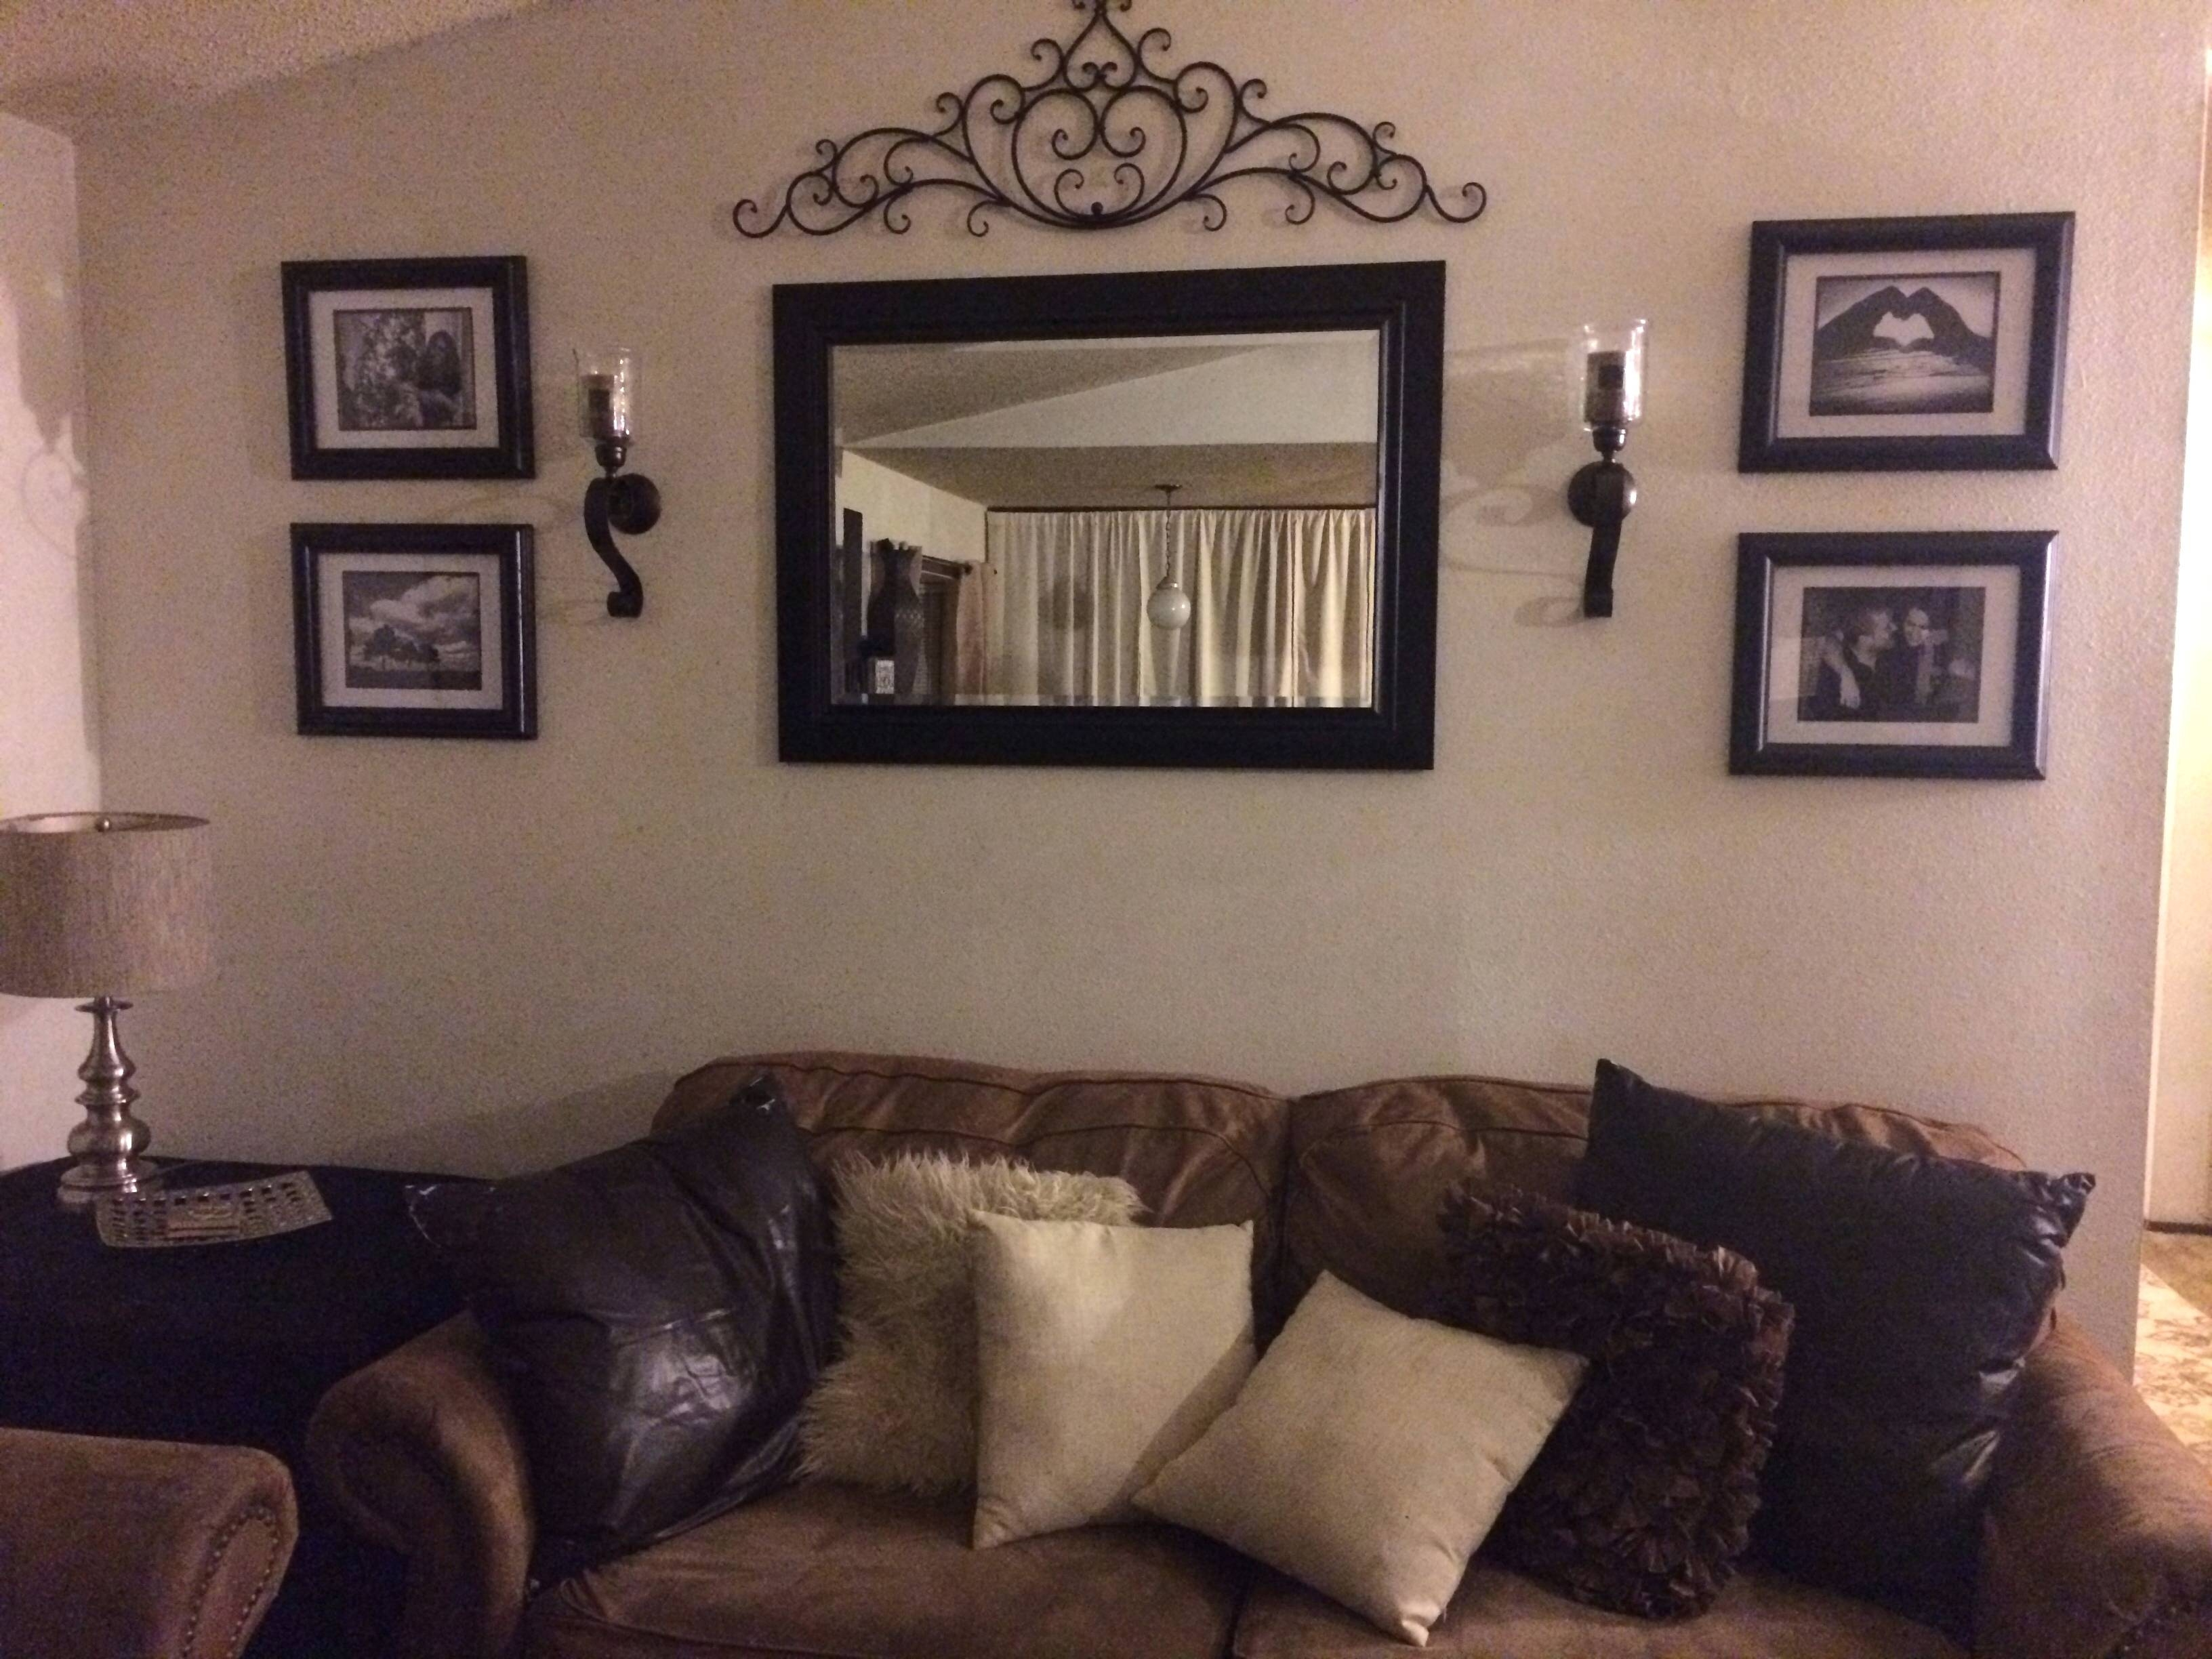 Wall Mirrors ~ Horizontal Decorative Wall Mirrors Wall Art Within Current Mirrored Frame Wall Art (View 20 of 20)